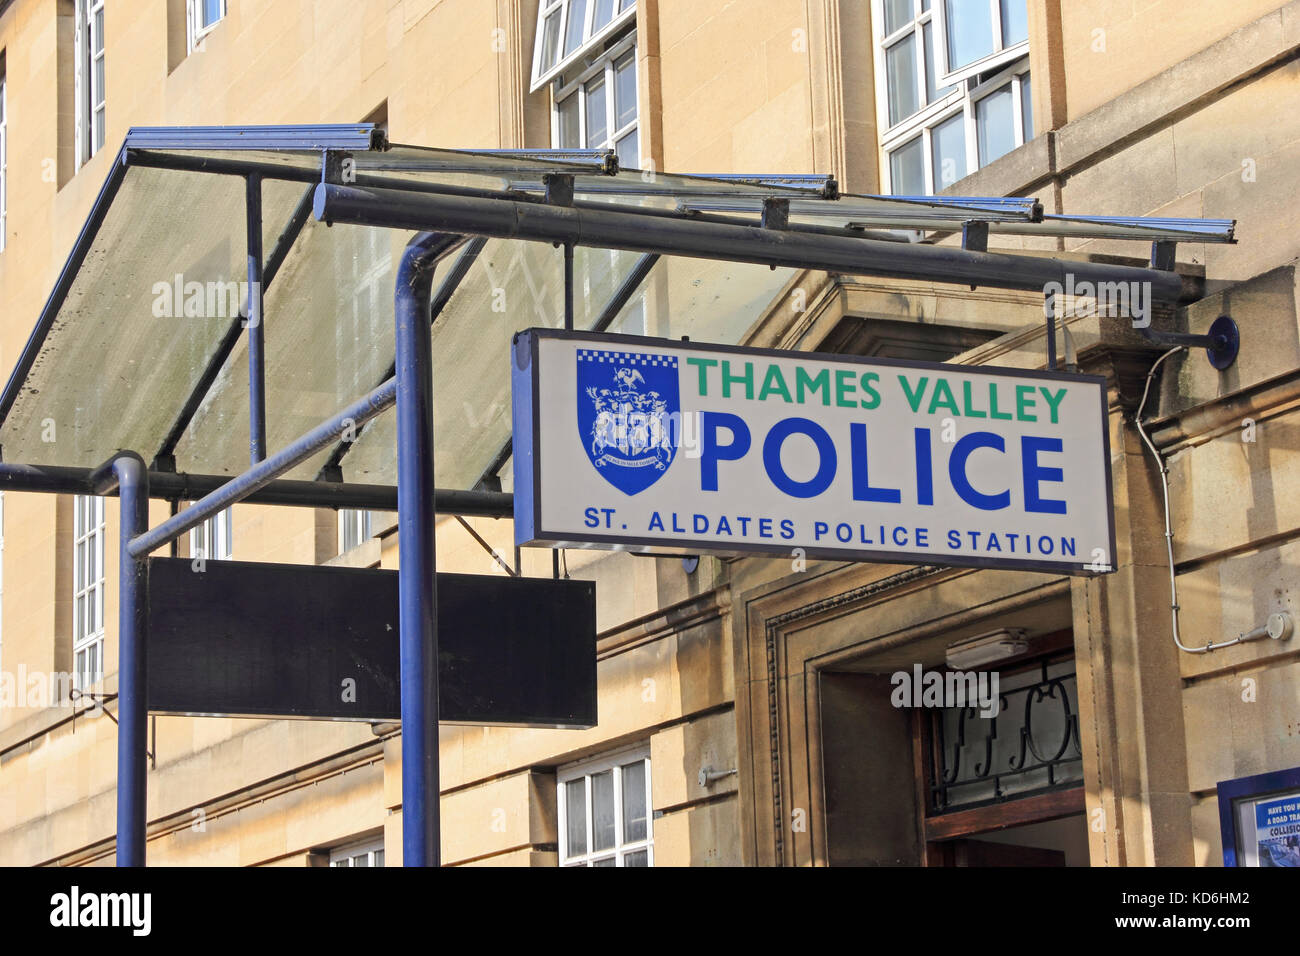 St Aldates Police Station sign, Oxford - Stock Image